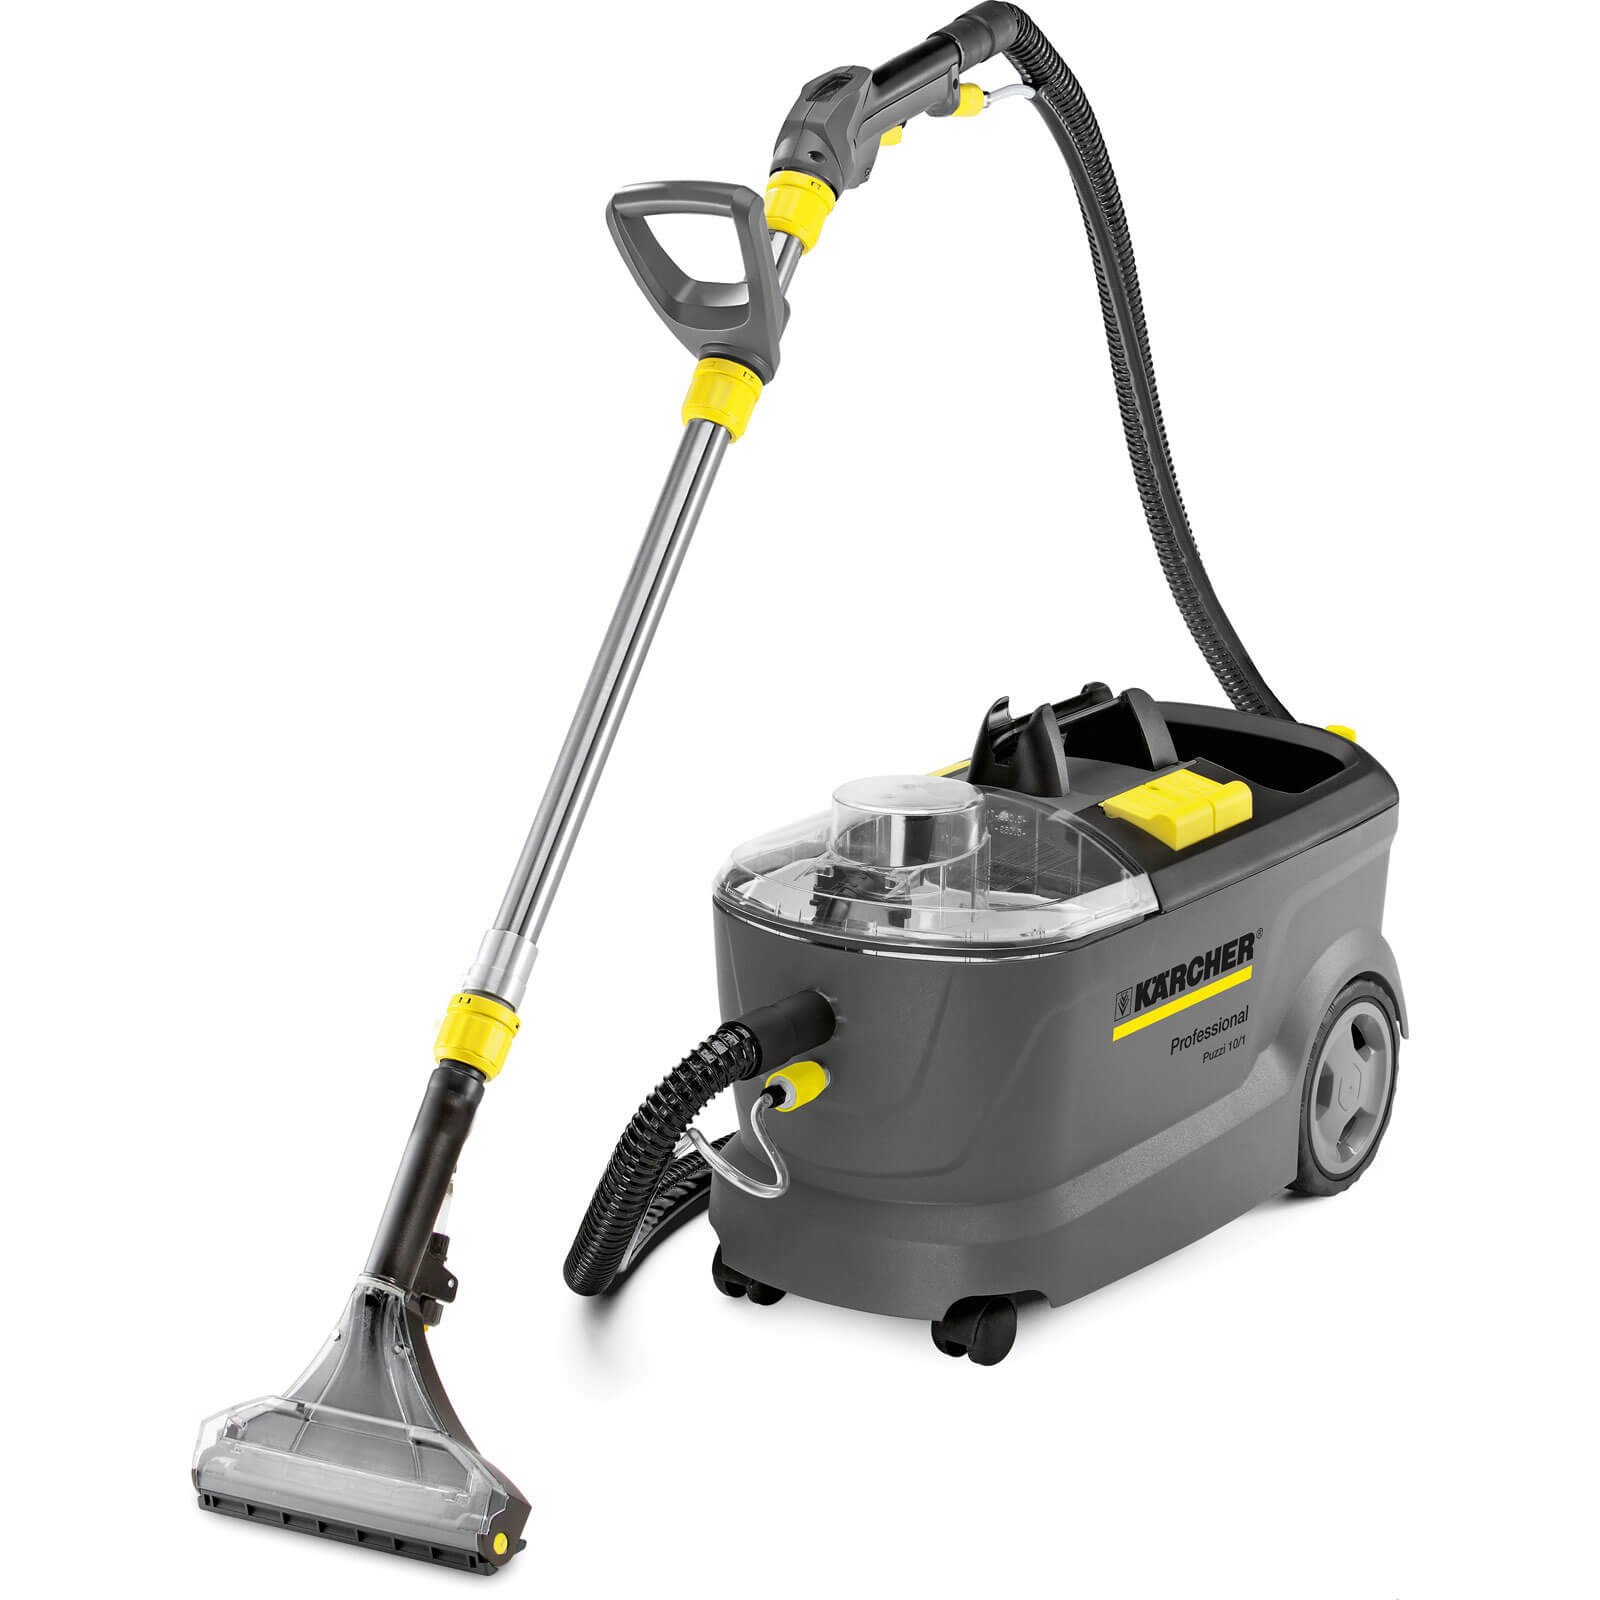 Karcher PUZZI 10/1 Commercial Spray Extraction Carpet & Upholstery Cleaner 1250w 240v